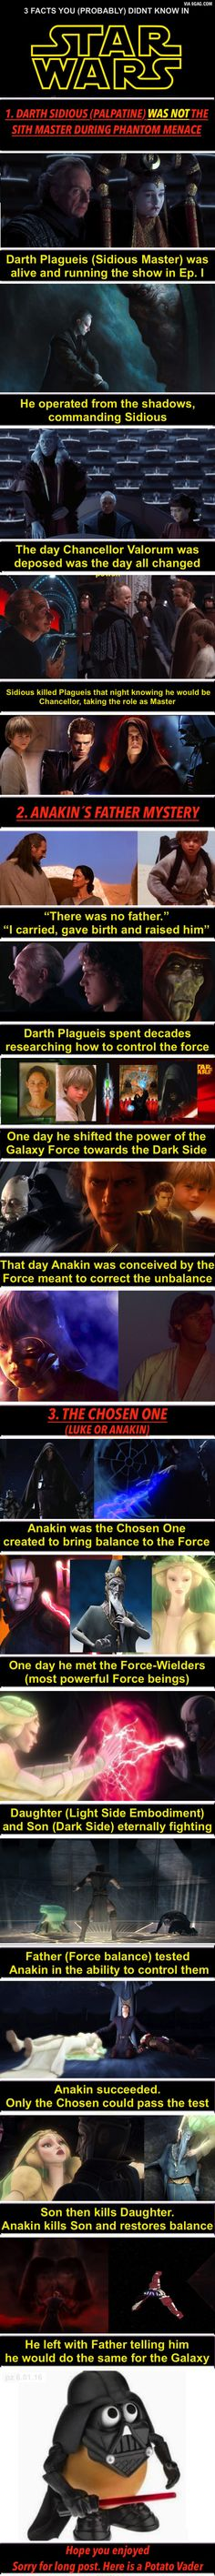 3 facts in Star Wars story you (probably) didn't know - 9GAG